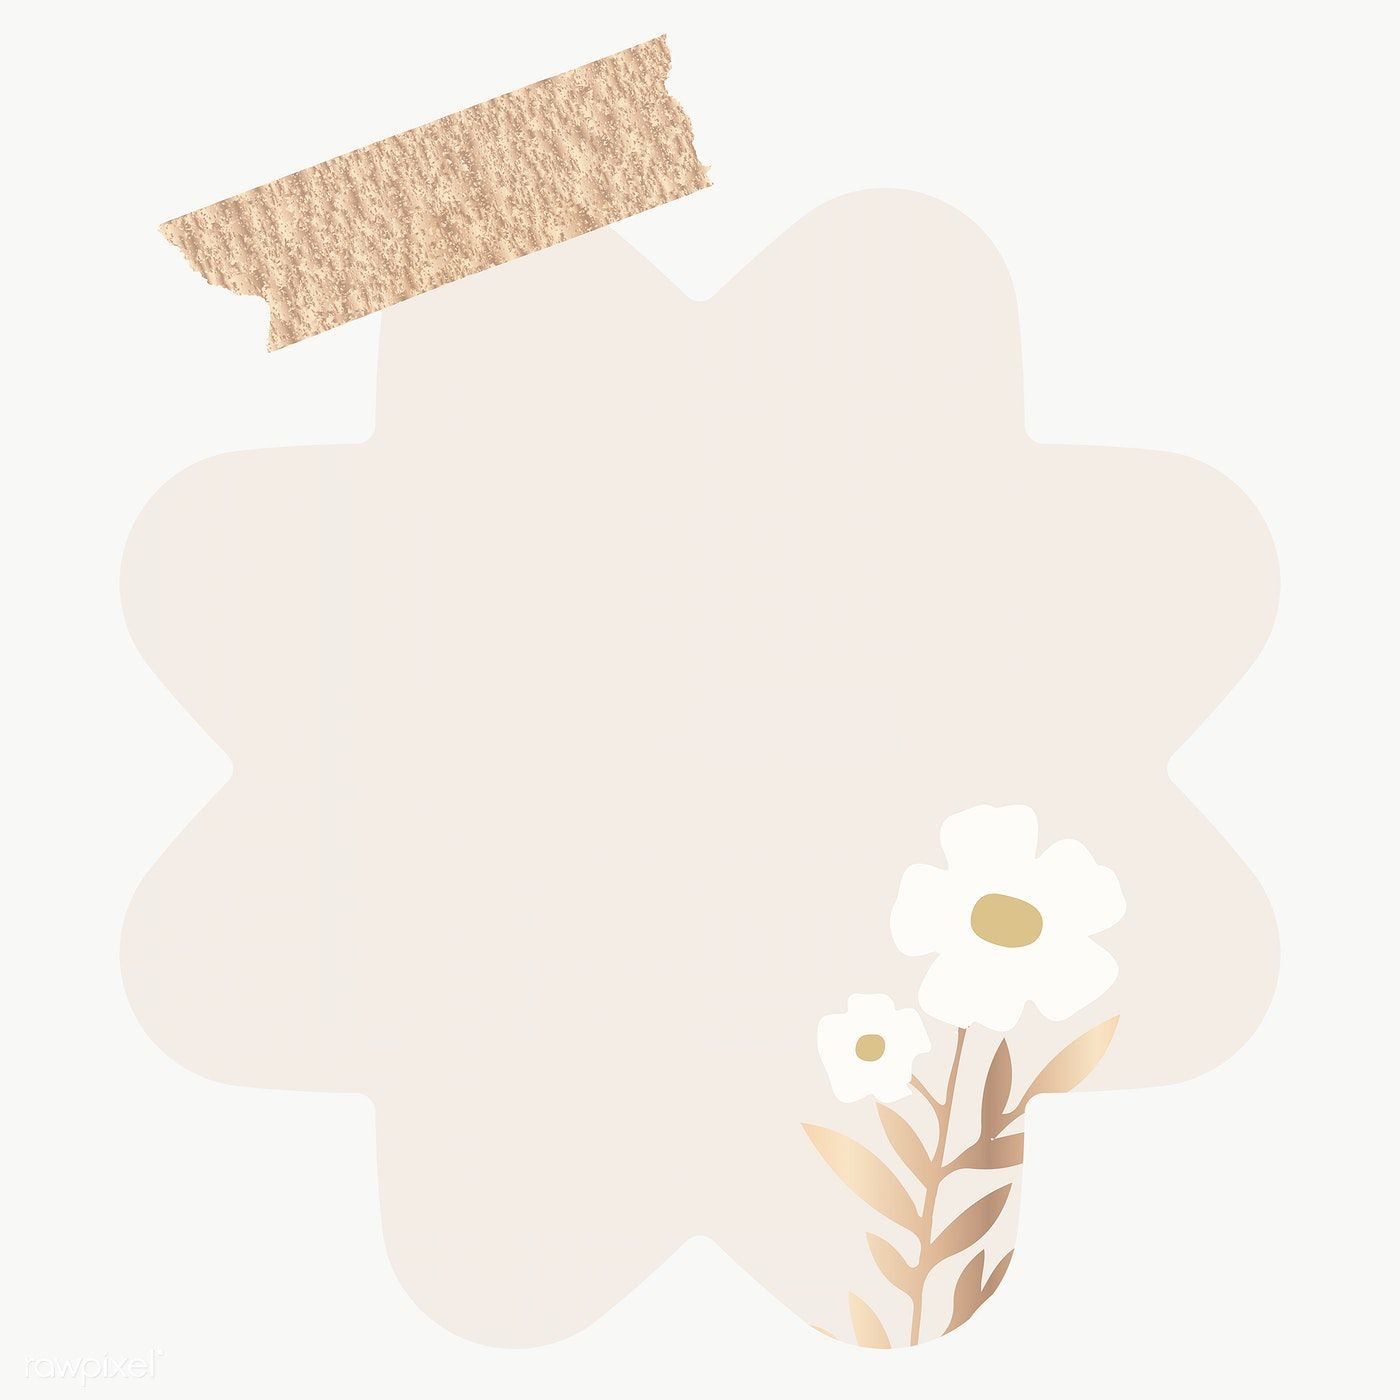 Blank Flower Shape Notepaper Set With Sticky Tape On Transparent Free Image By Rawpixel Com Chayani Paper Background Texture Note Paper Instagram Wallpaper